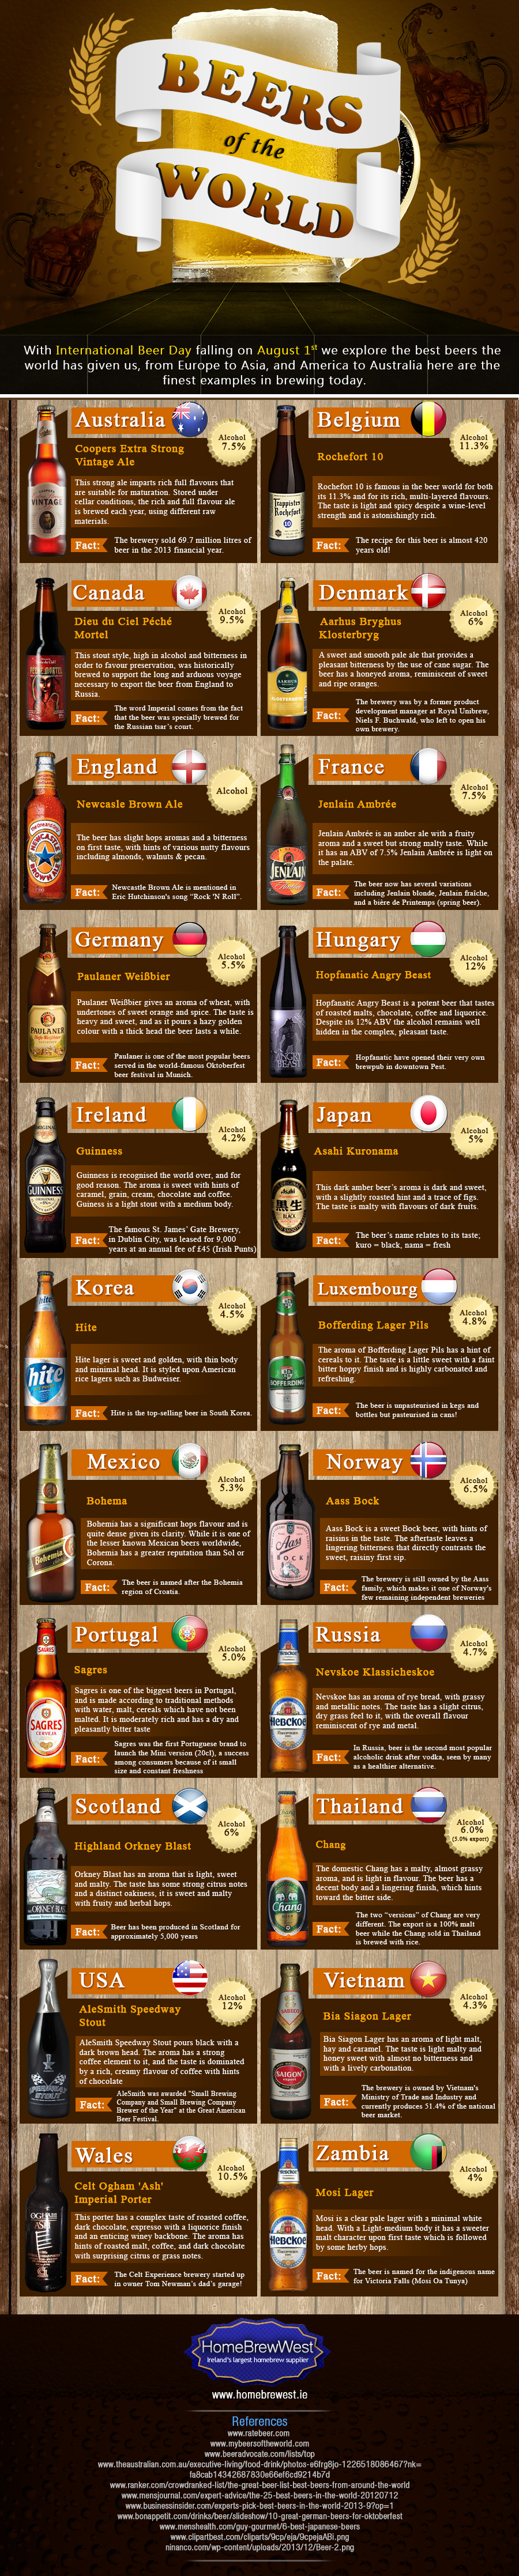 Home Brew West - IG July - Beers of the World